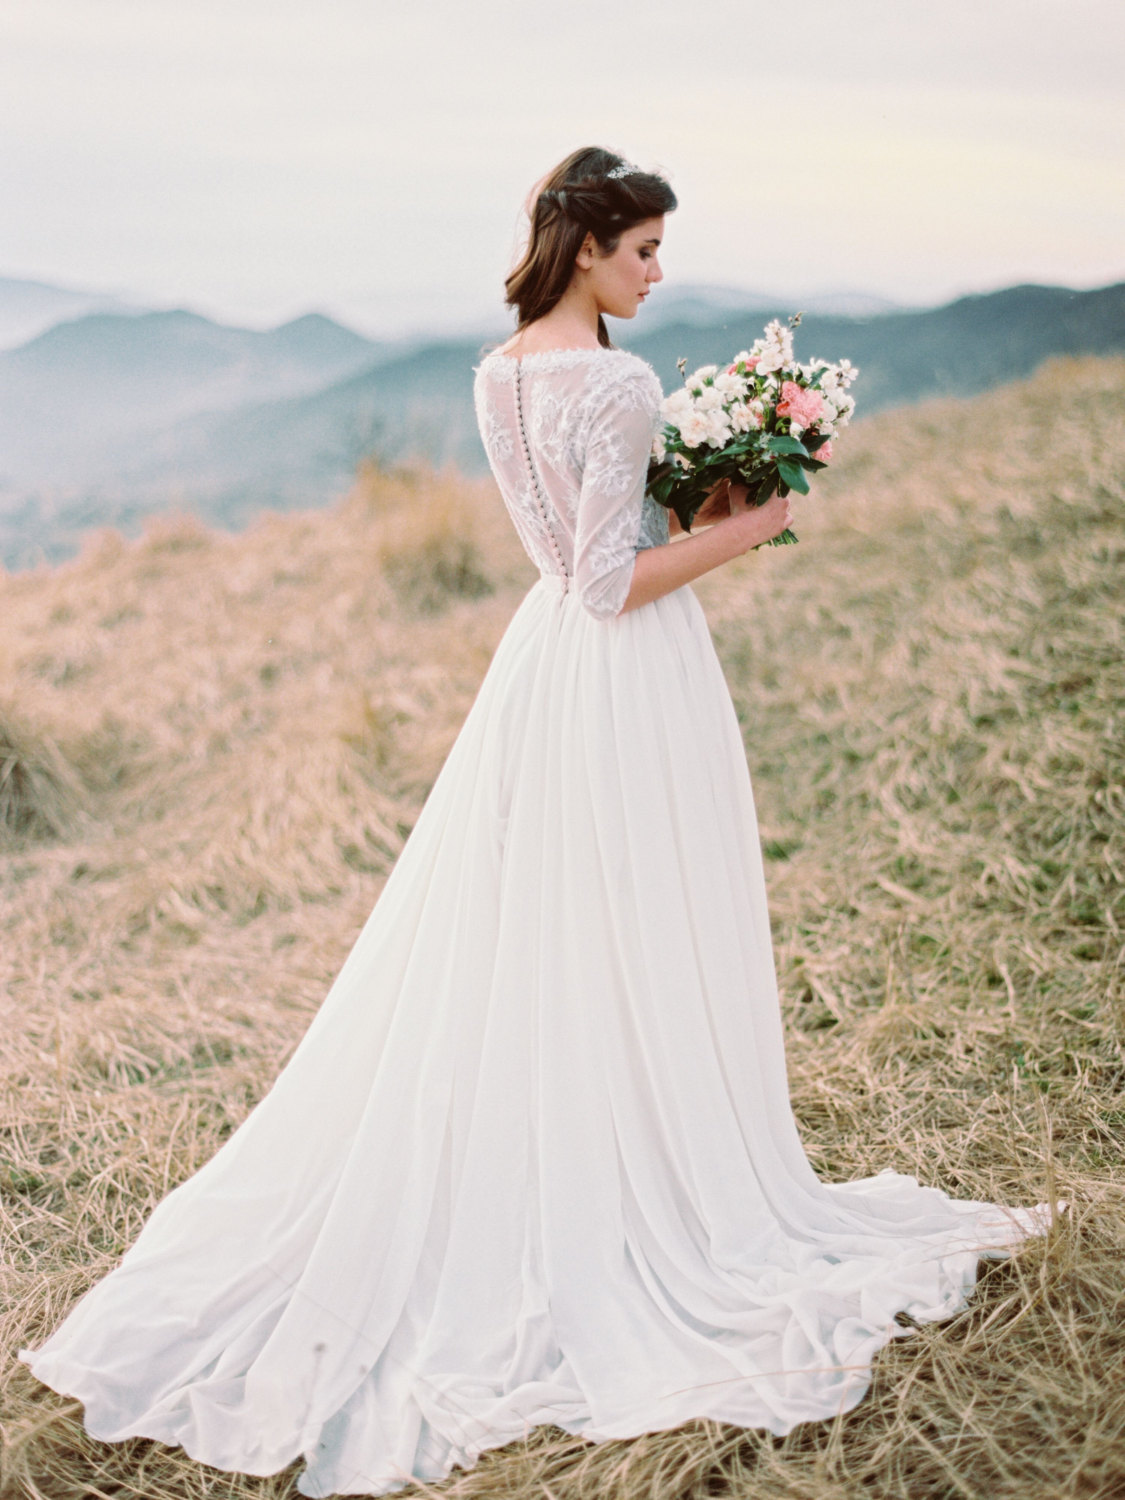 20 ethereal wedding dresses from etsy southbound bride for Ethereal wedding dress